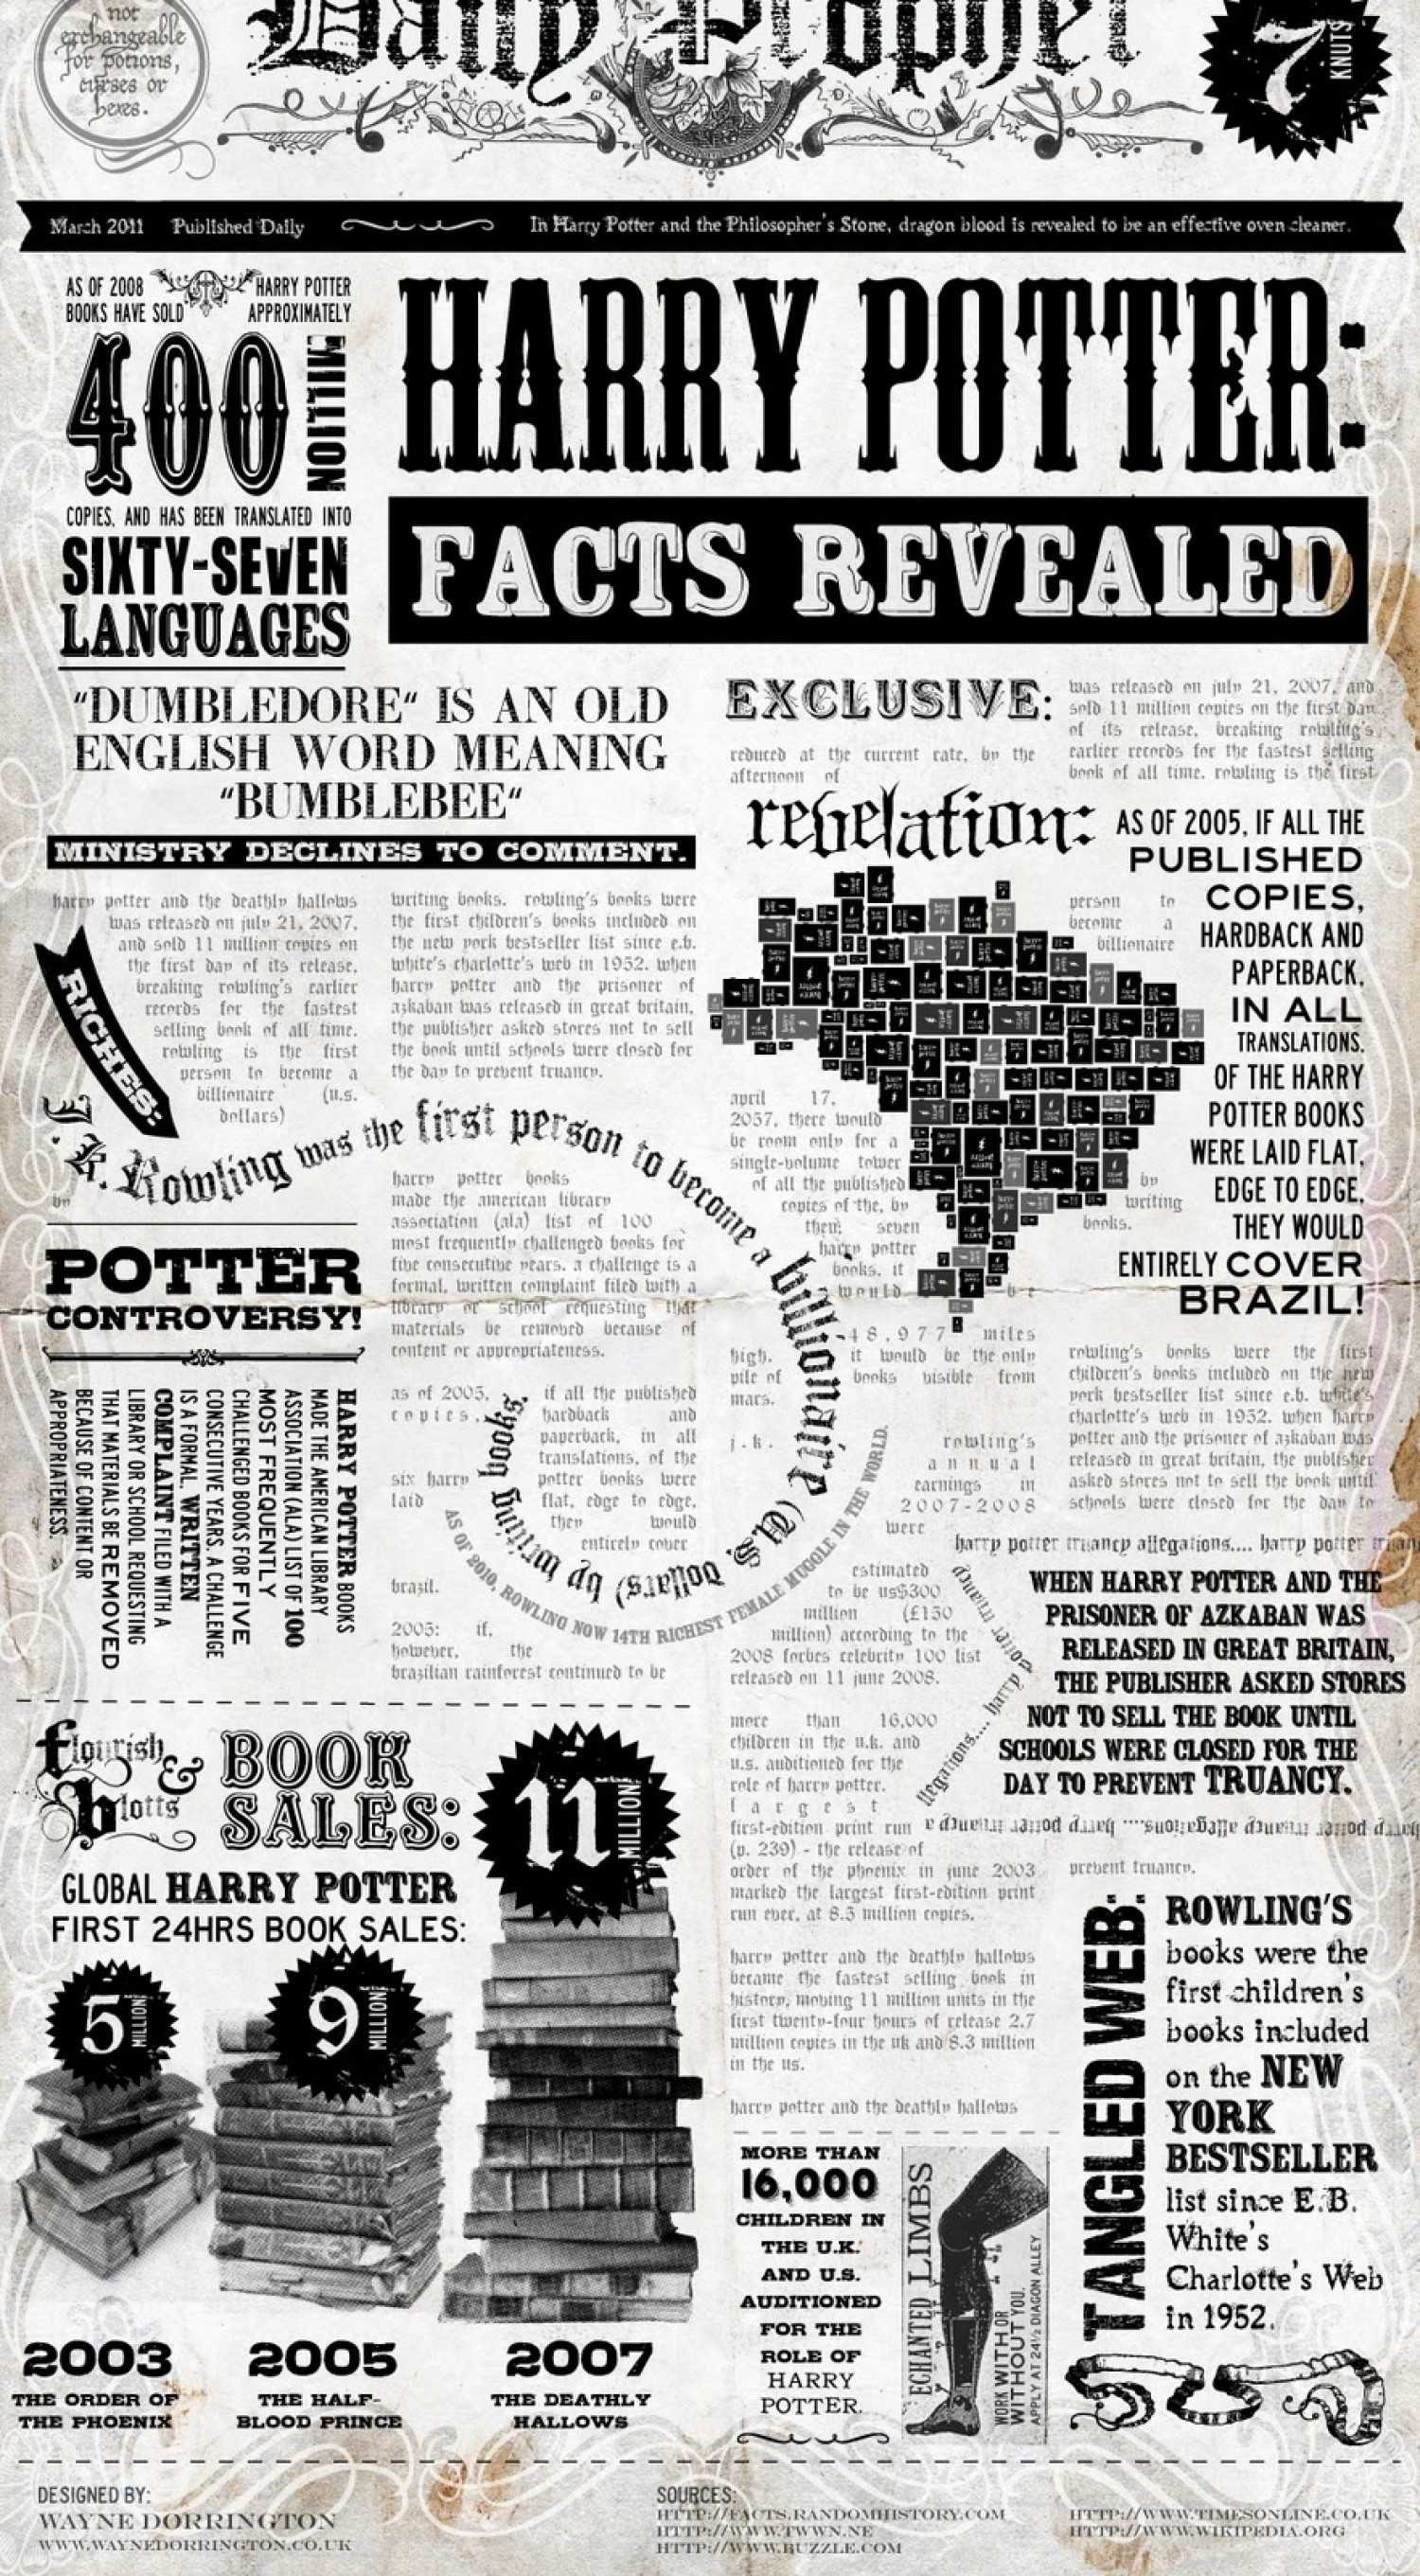 Harry Potter Facts Revealed